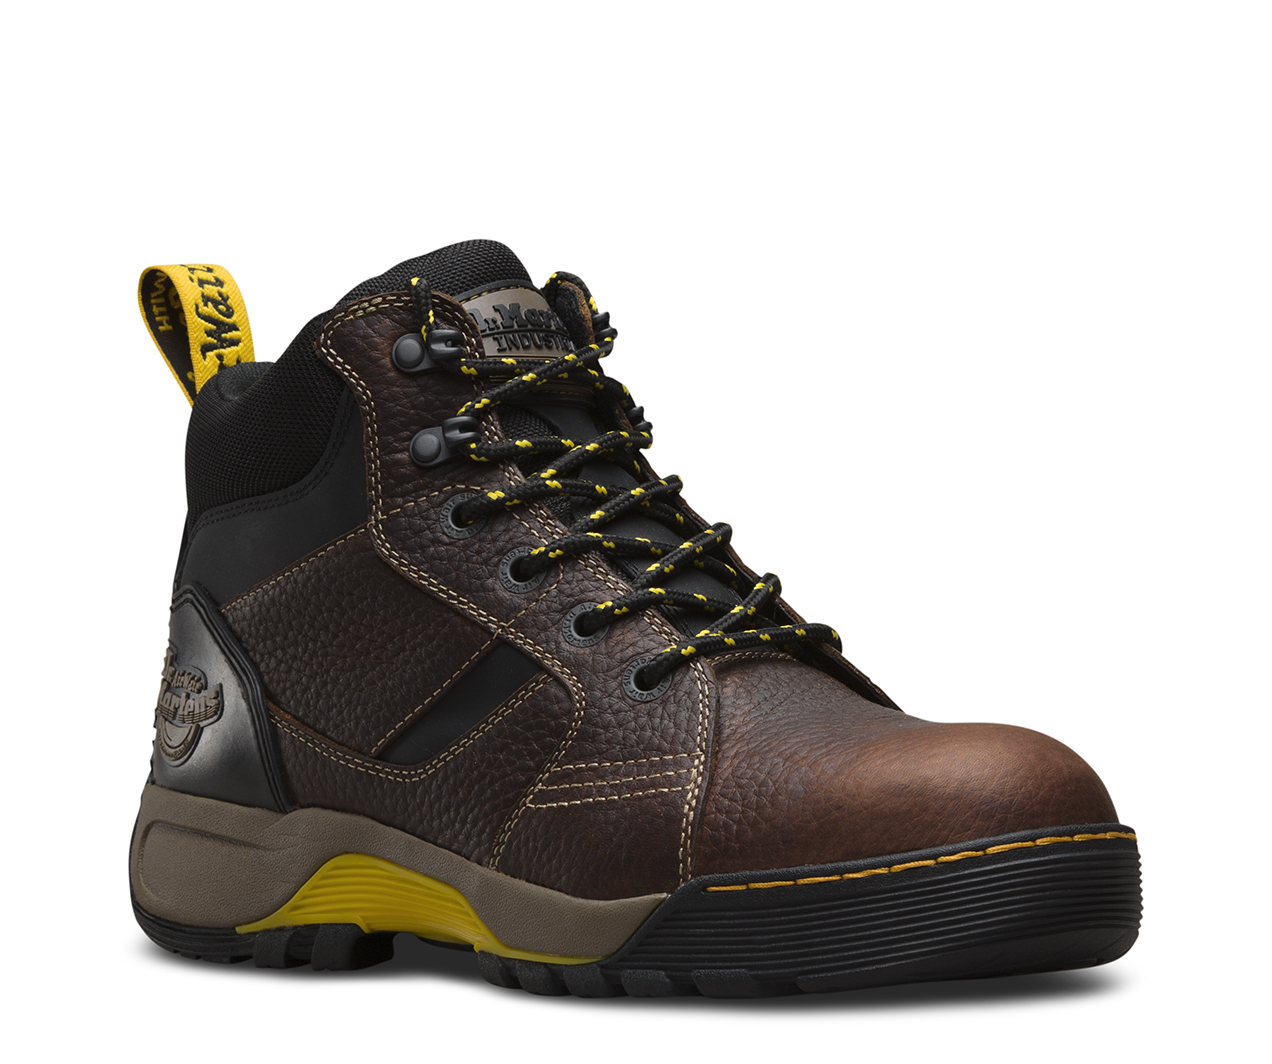 Wolverine Shoes Retail Stores